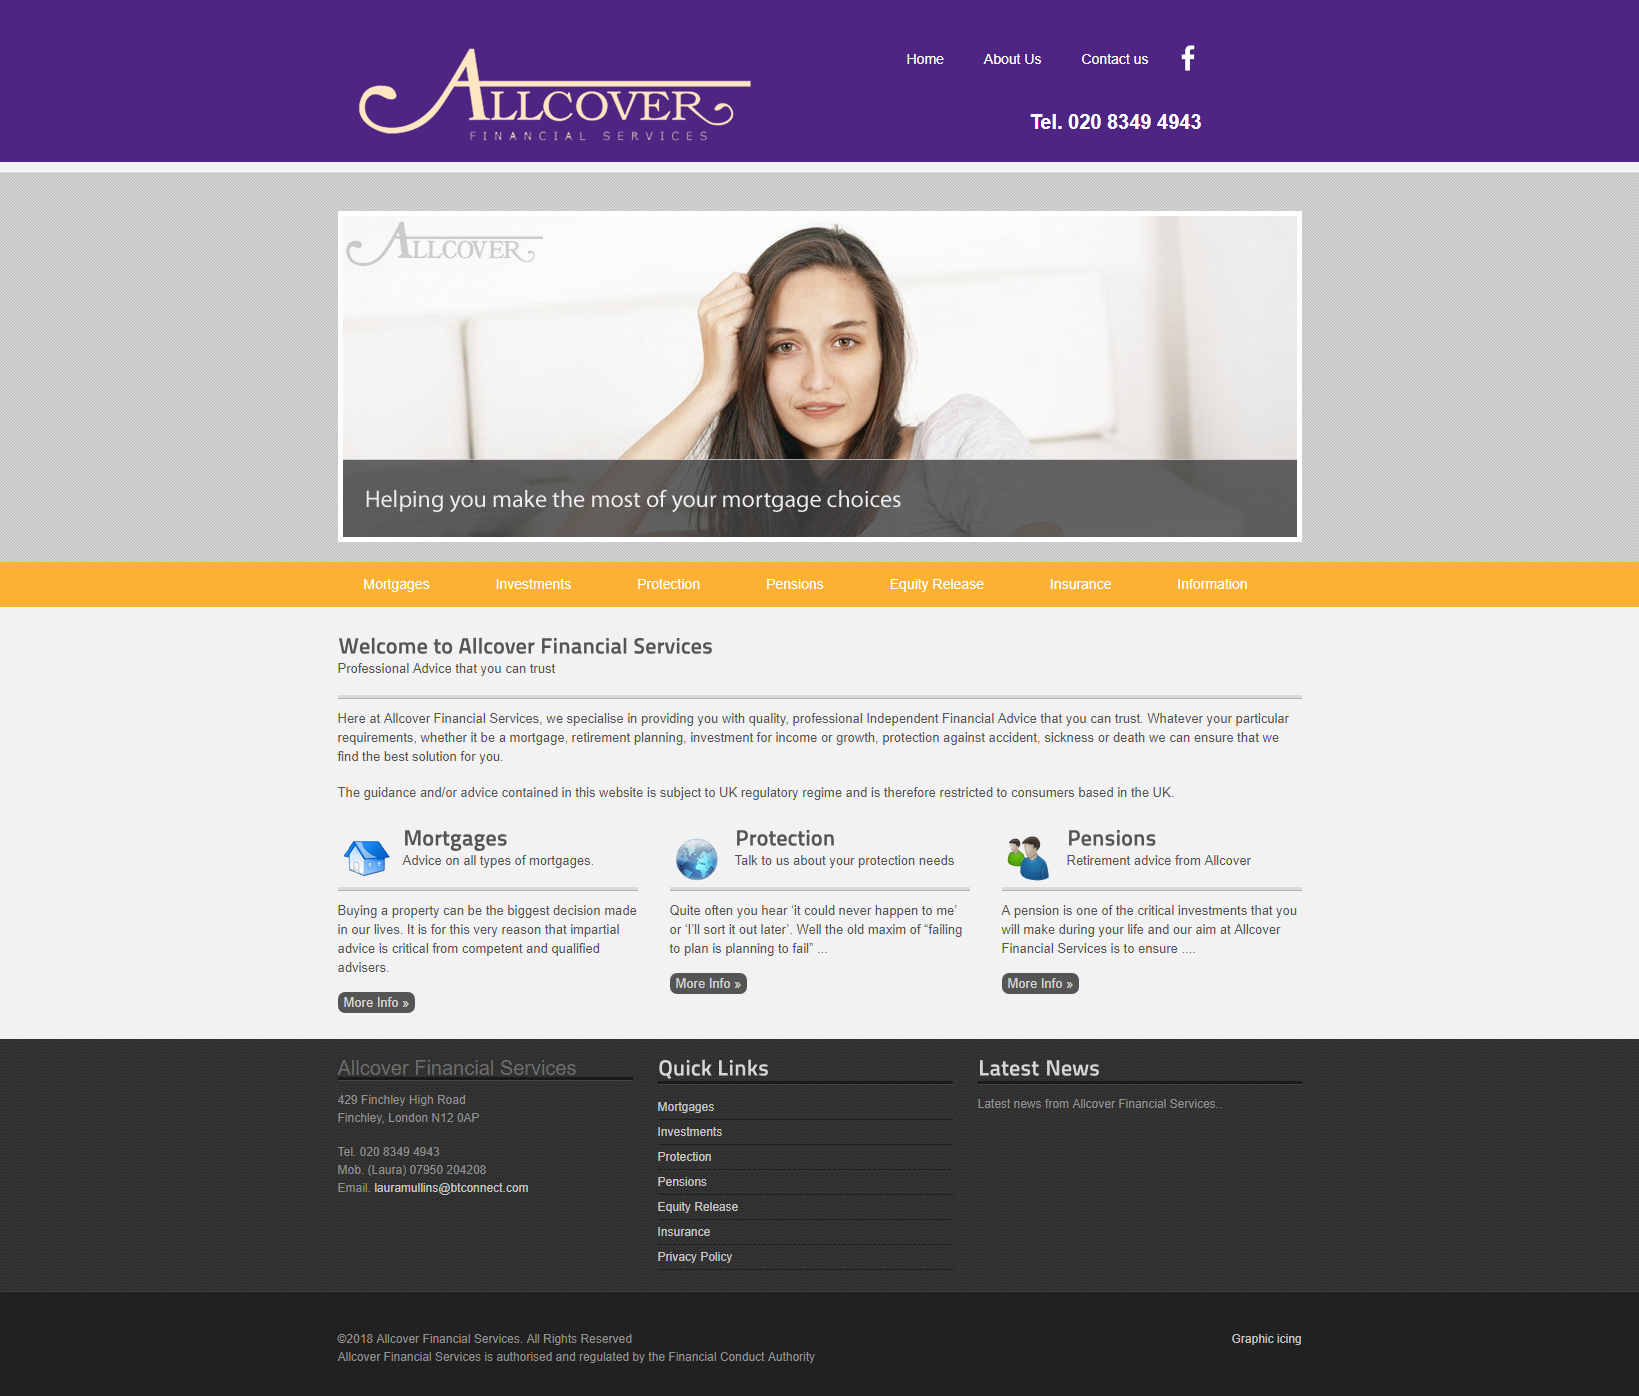 Allcover website design update